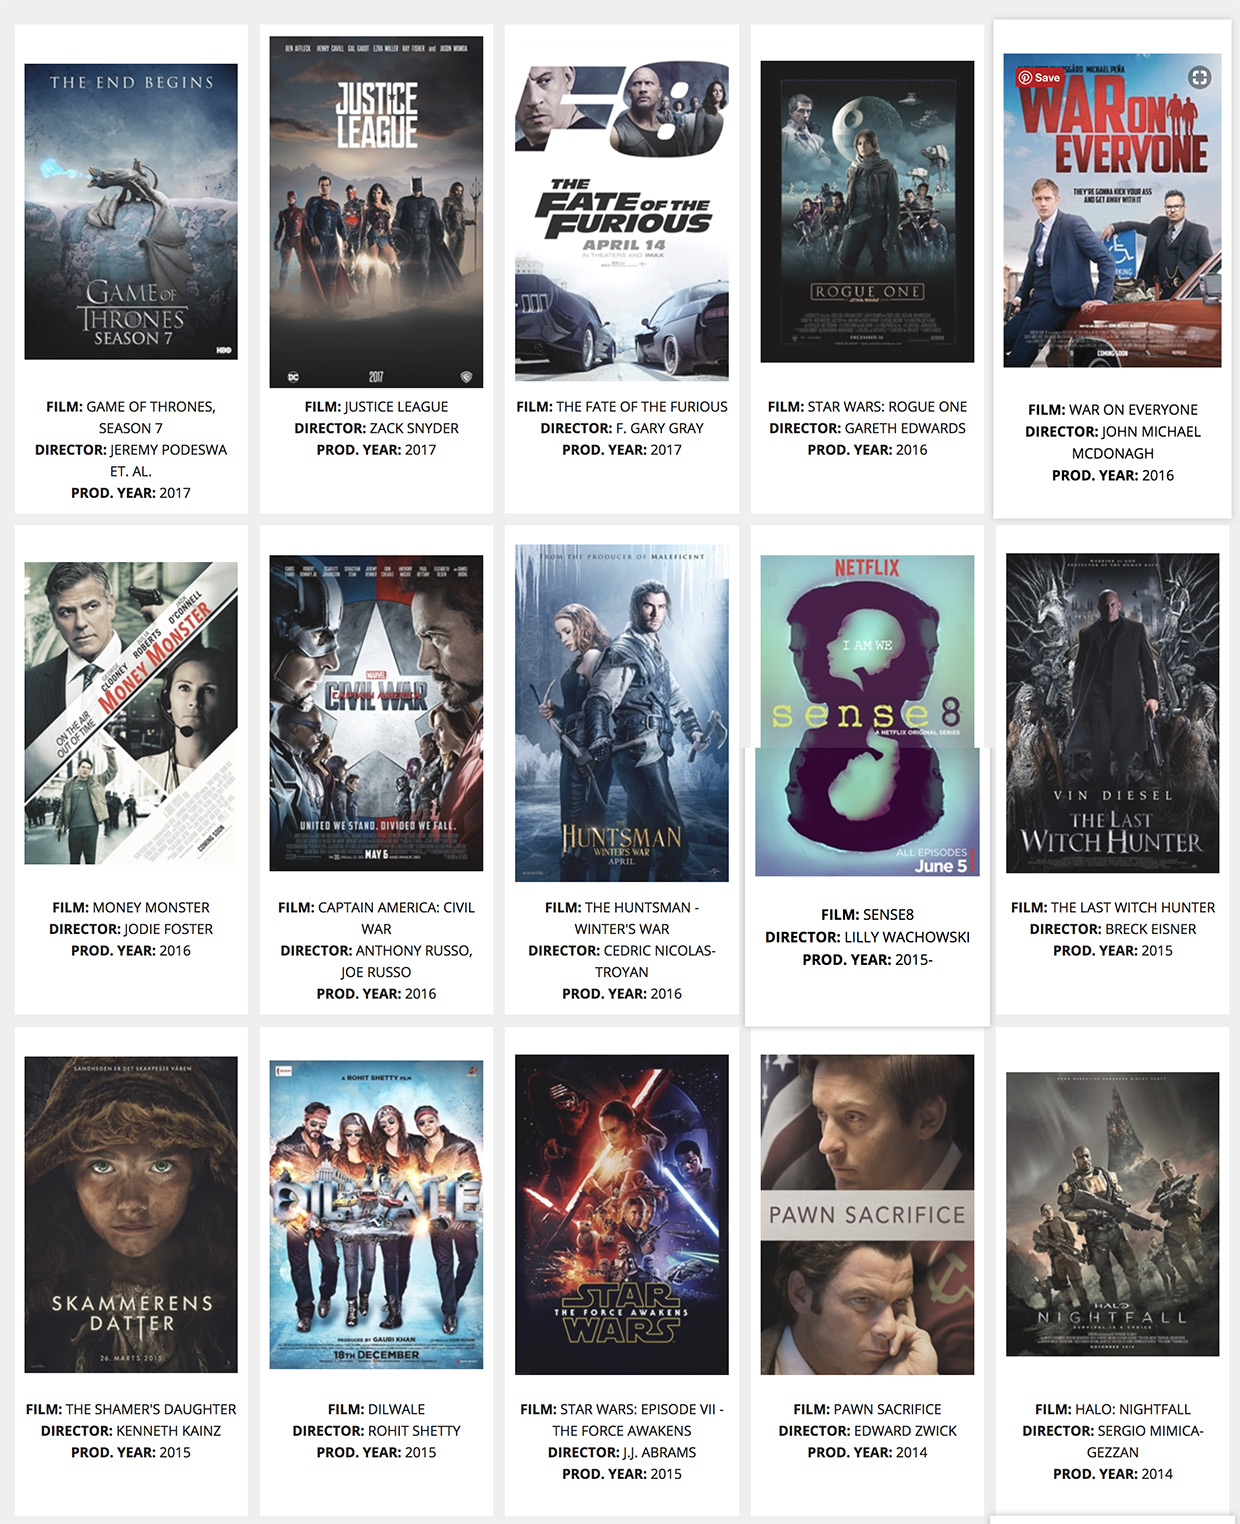 Popular films and television shows produced in Iceland